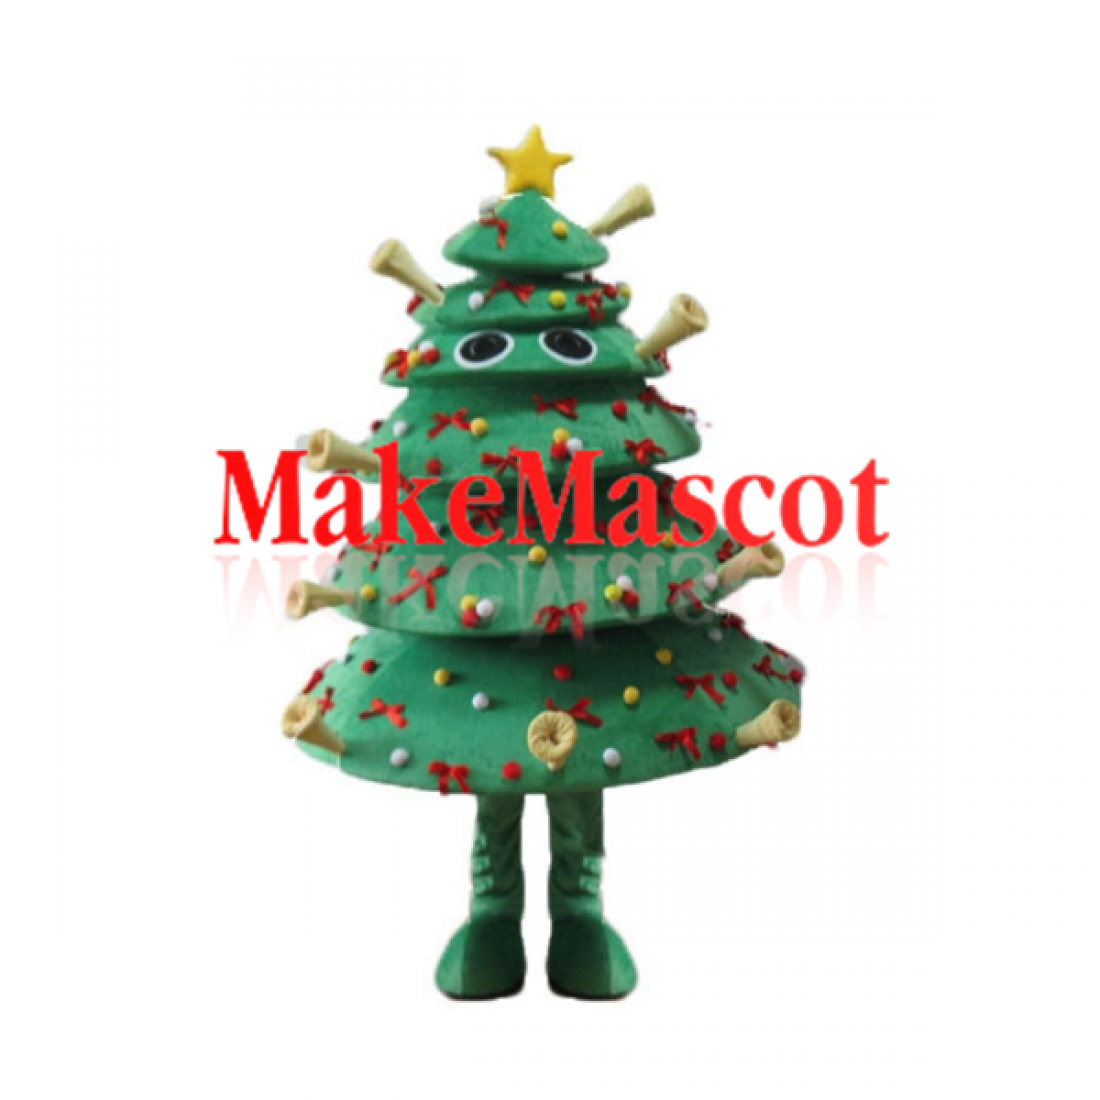 Christmas Tree Decorated Mascot Highly Original And Crazy Mascot Costume In 2020 With Images Christmas Tree Decorations Mascot Costumes Tree Decorations